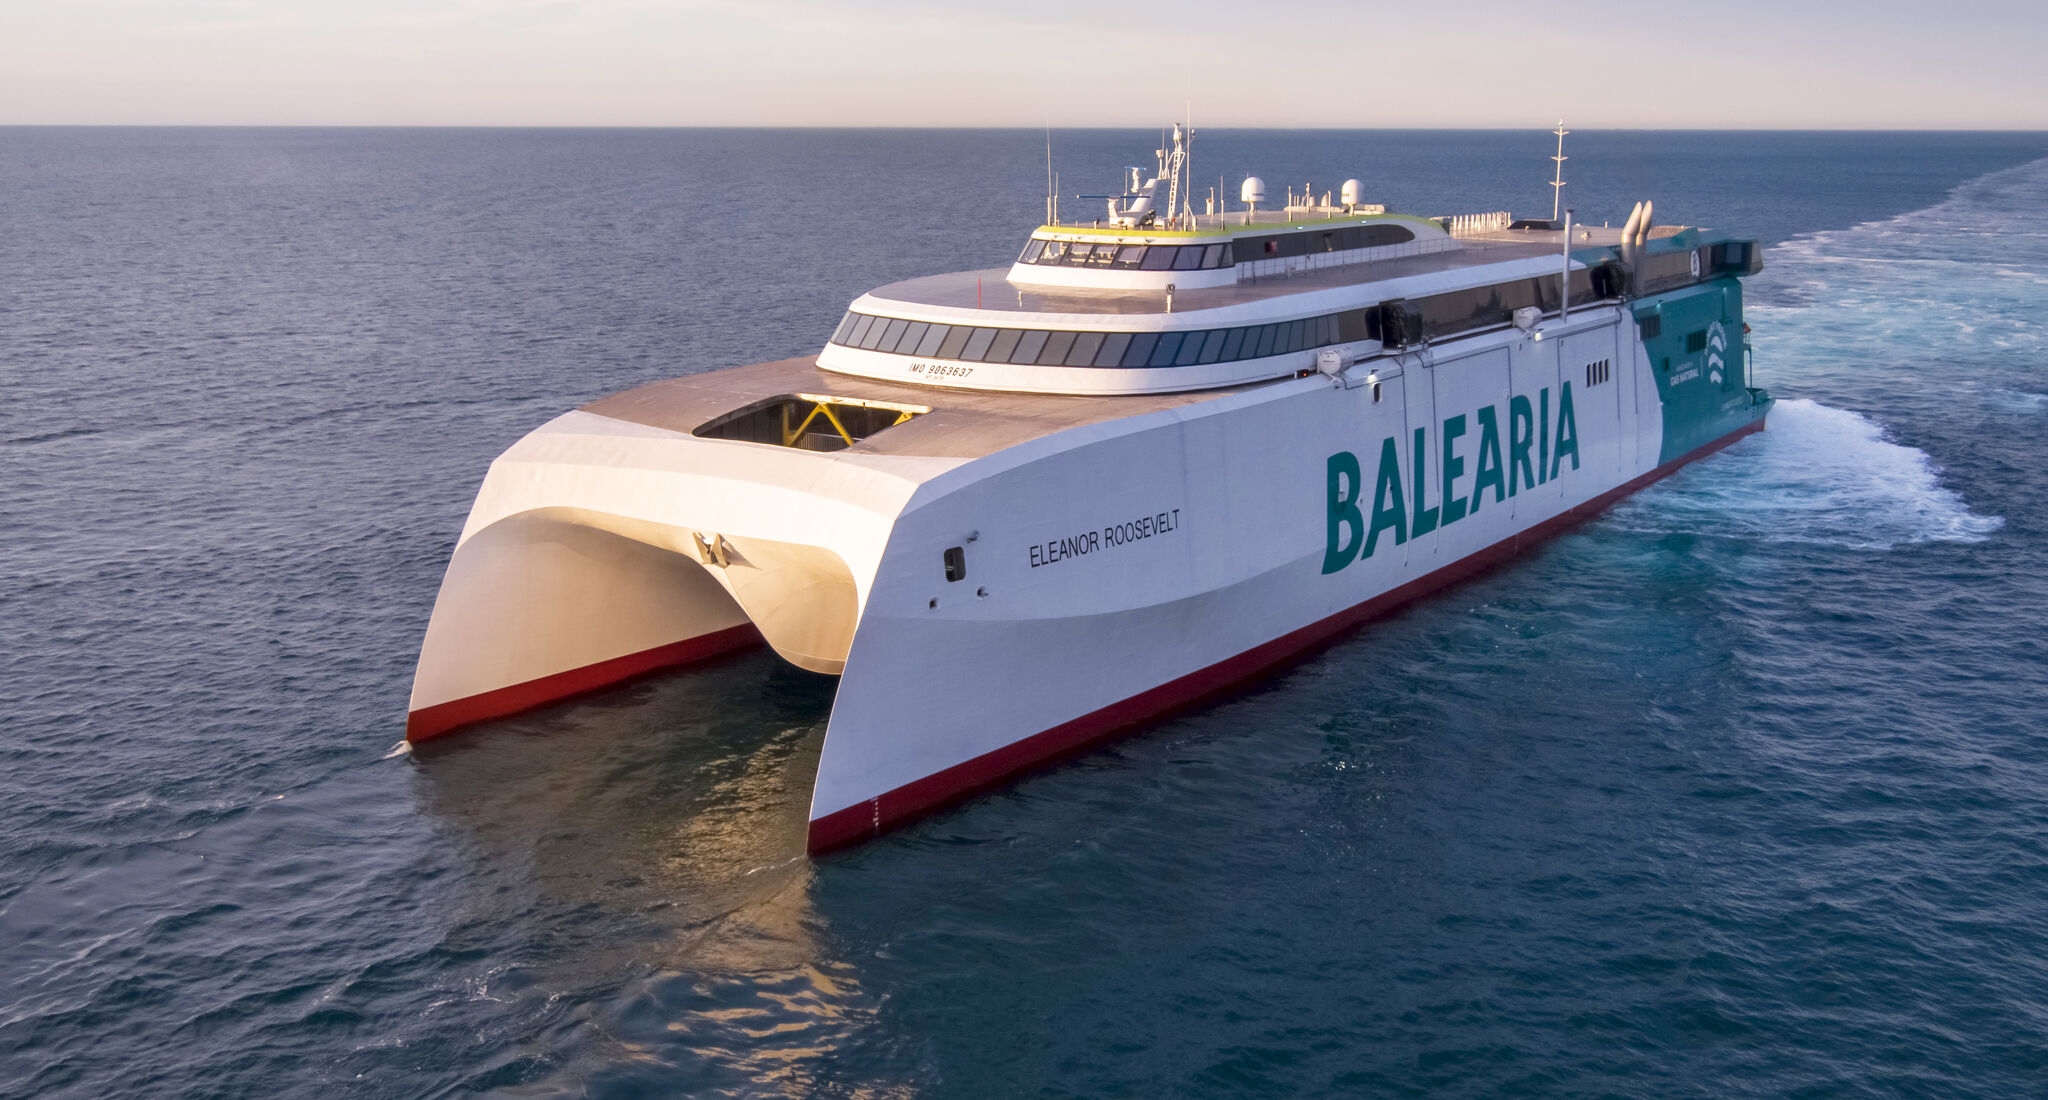 Spain's Balearia sets sights on new LNG-powered ferry